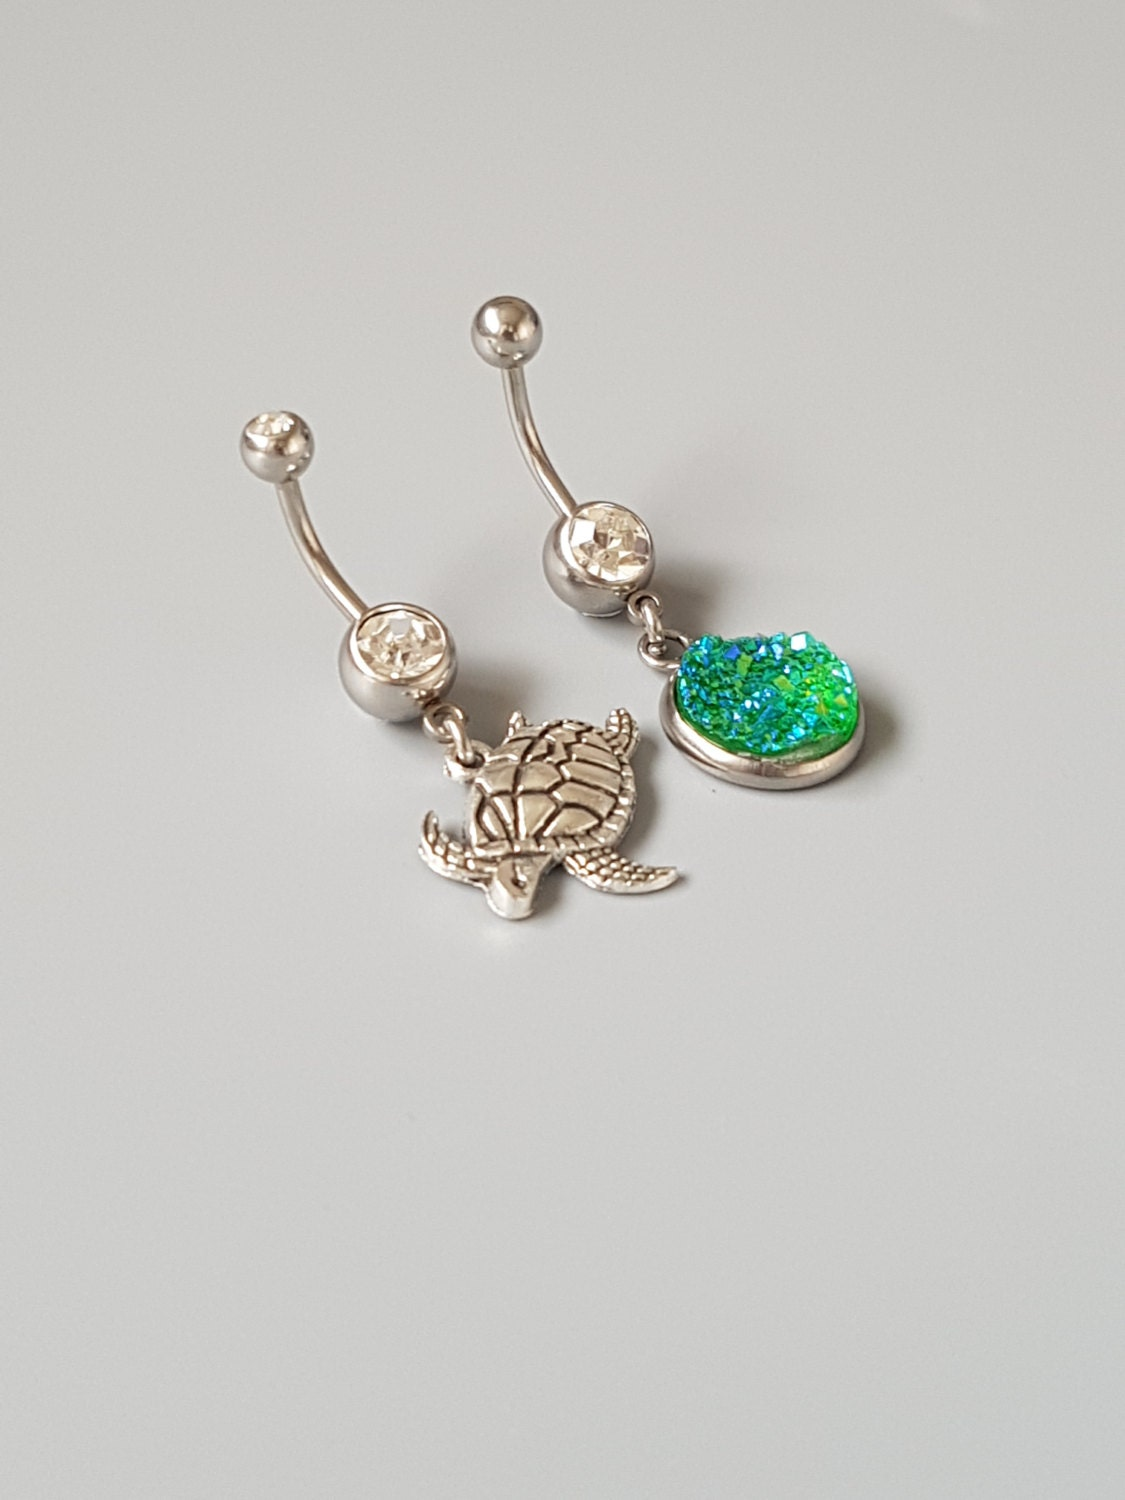 Belly button ring set Turtle navel rings Faux druzy green